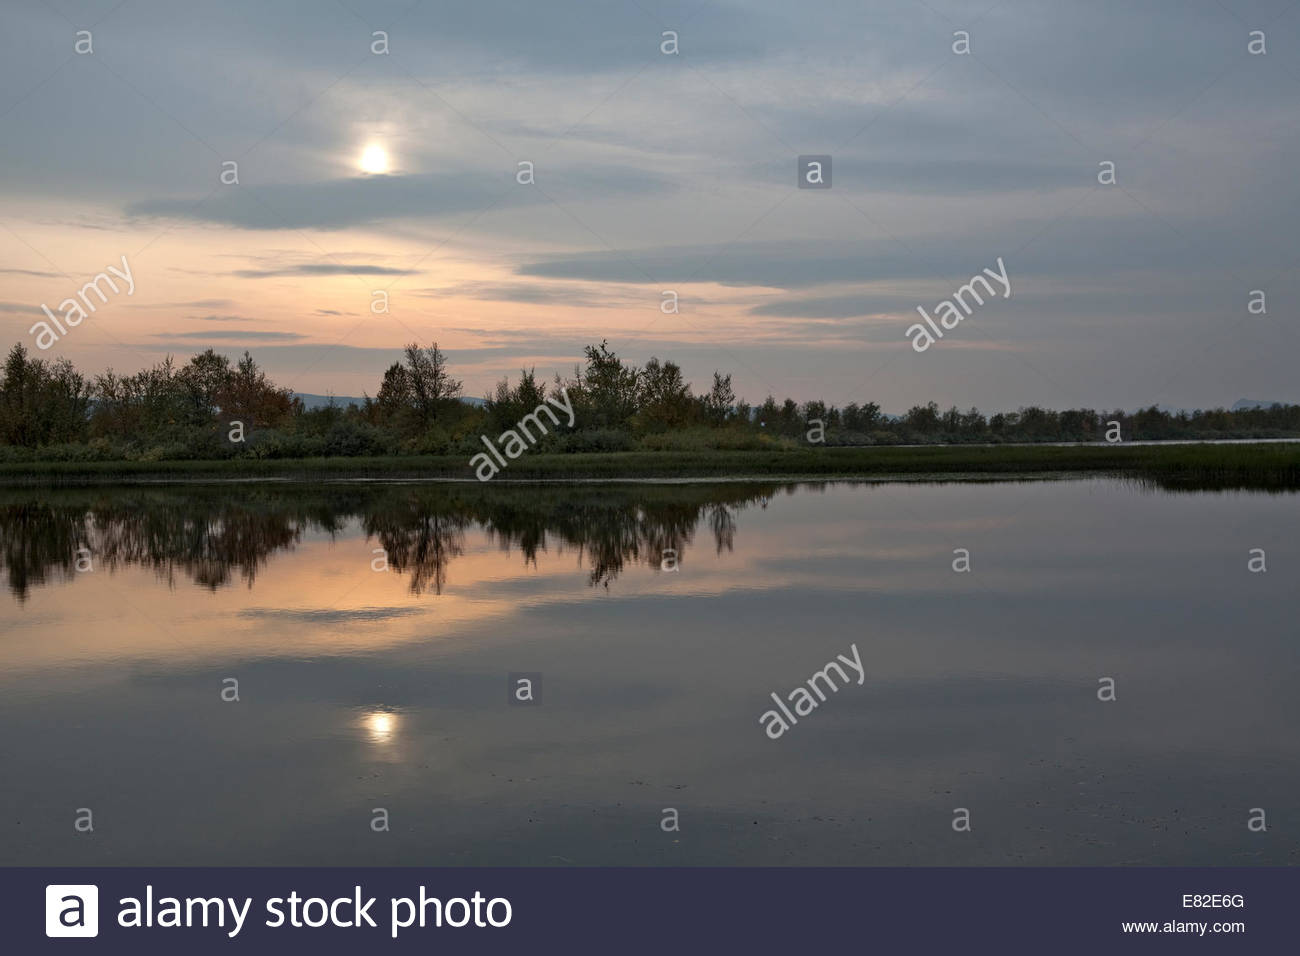 Border river between Finland and Sweden at sunset - Stock Image